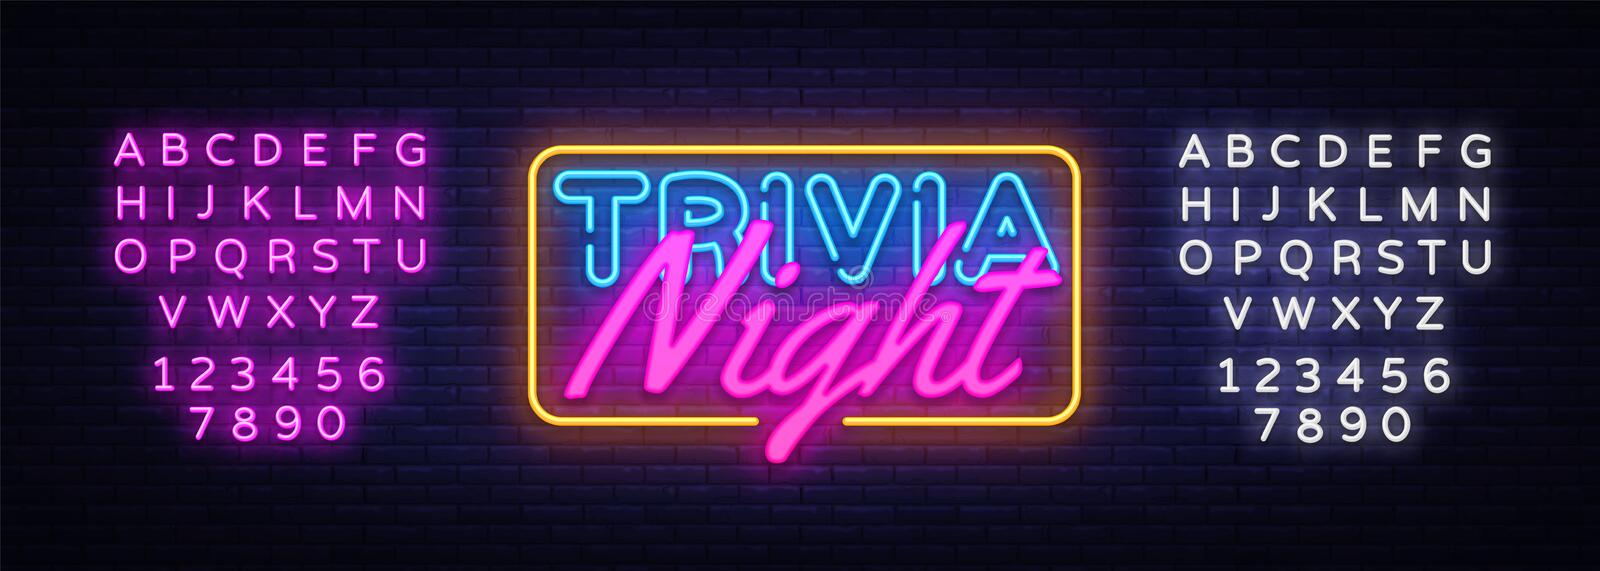 Trivia Night neon sign vector. Quiz Time Design template neon sign, light banner, neon signboard, nightly bright stock illustration